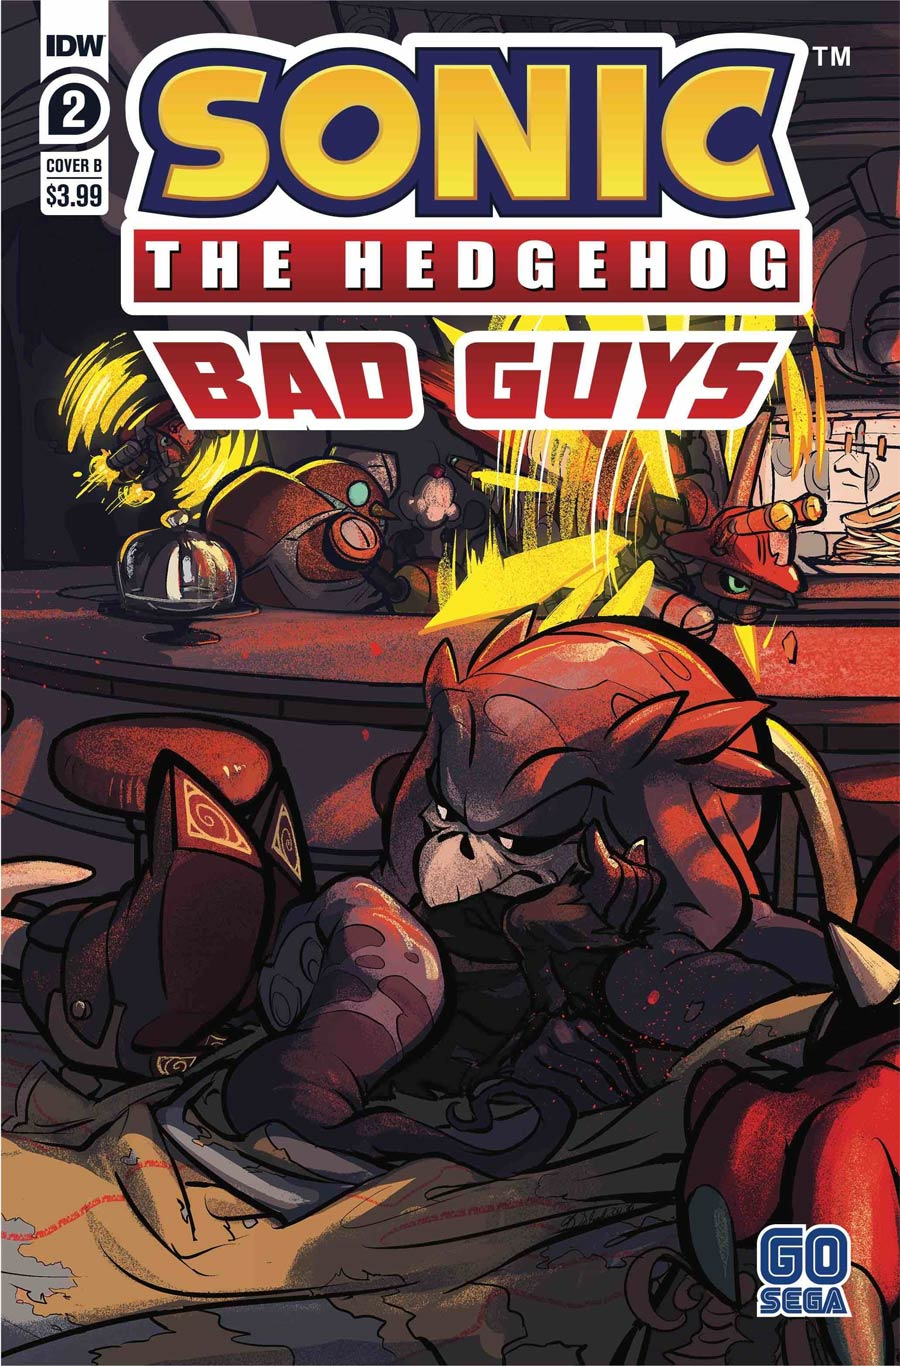 Sonic The Hedgehog Bad Guys #2 Cover B Variant Diana Skelly Cover